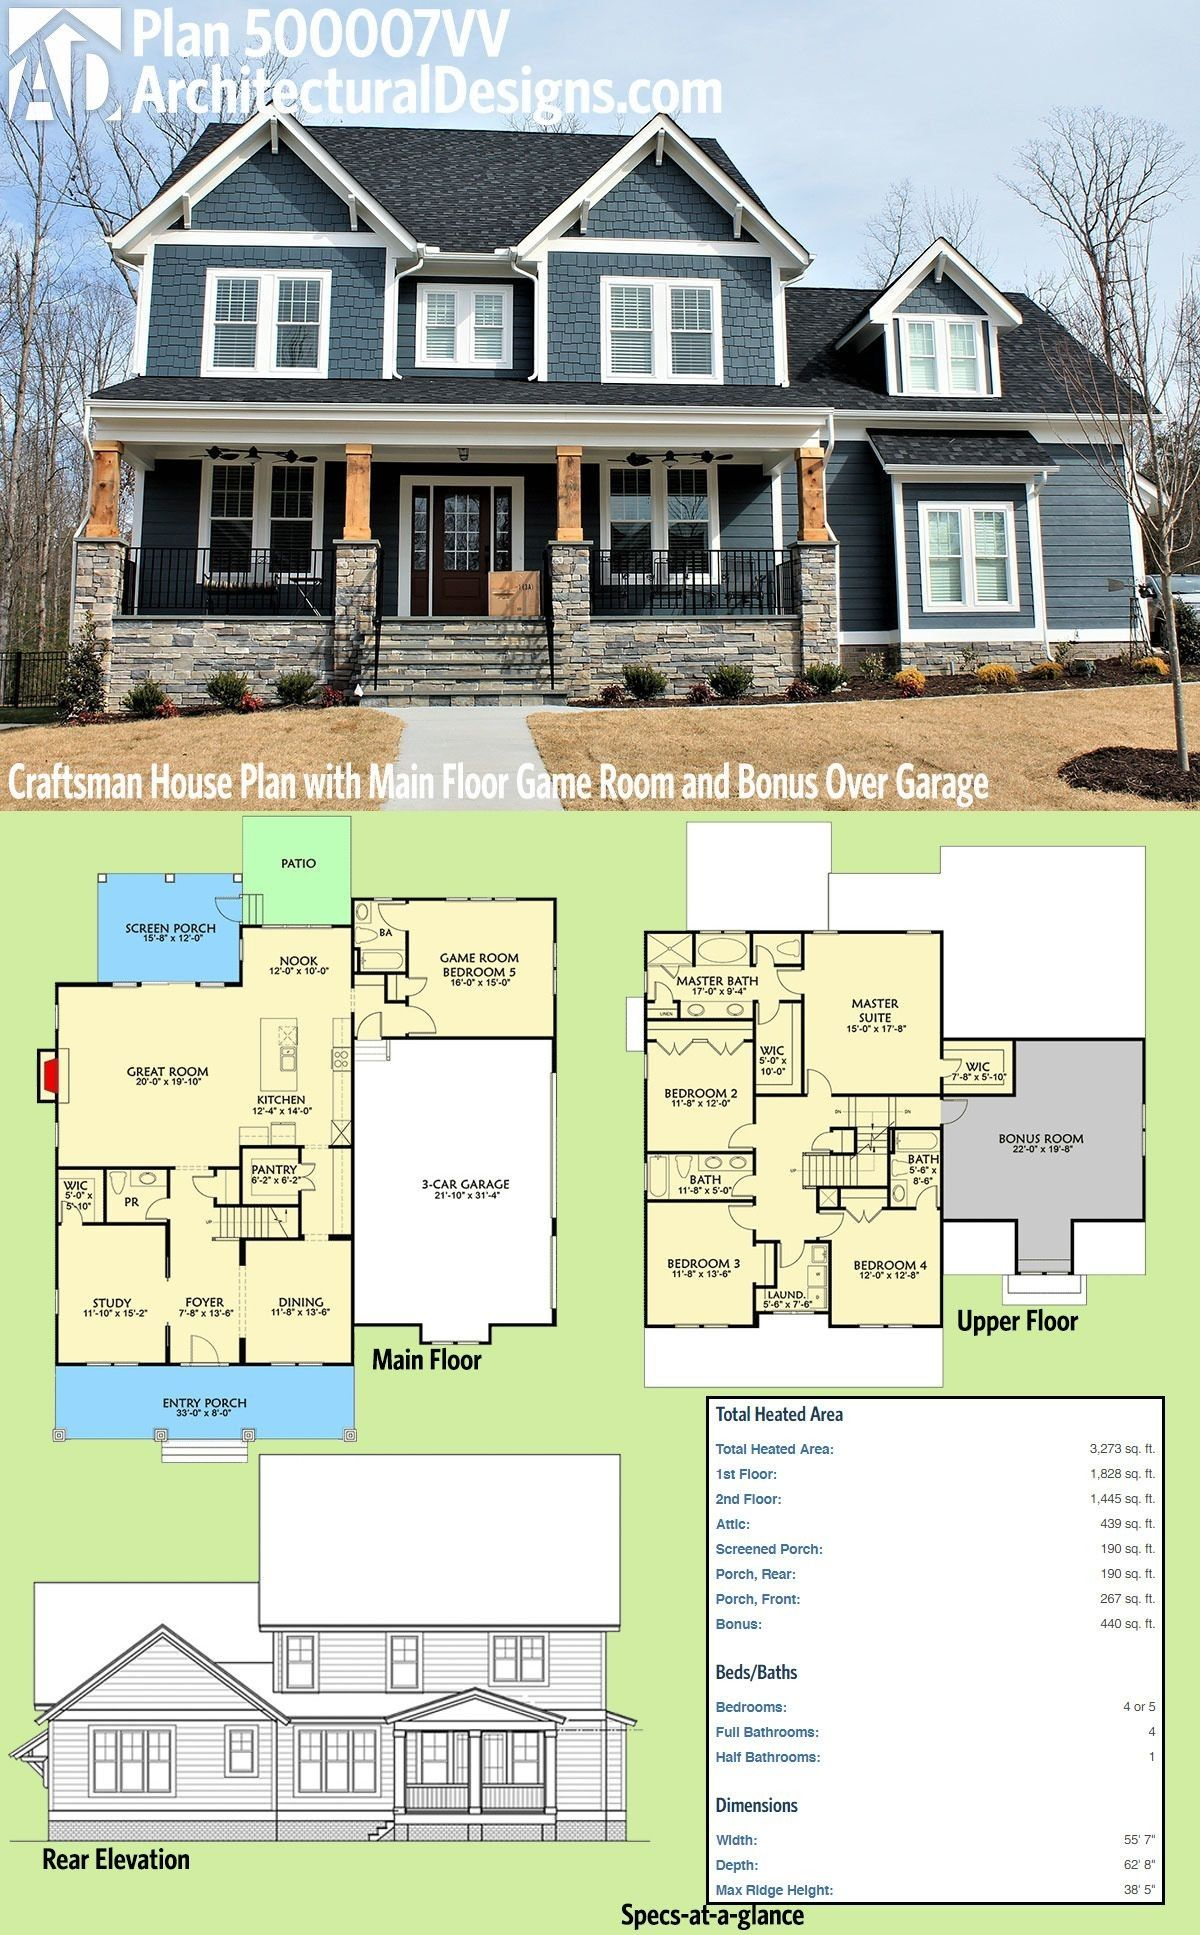 House Plans Kitchen In Front Best Of Plan Vv Craftsman House Plan With Main Floor Game Room And Of Dream House Plans Craftsman House Plan Craftsman House Plans